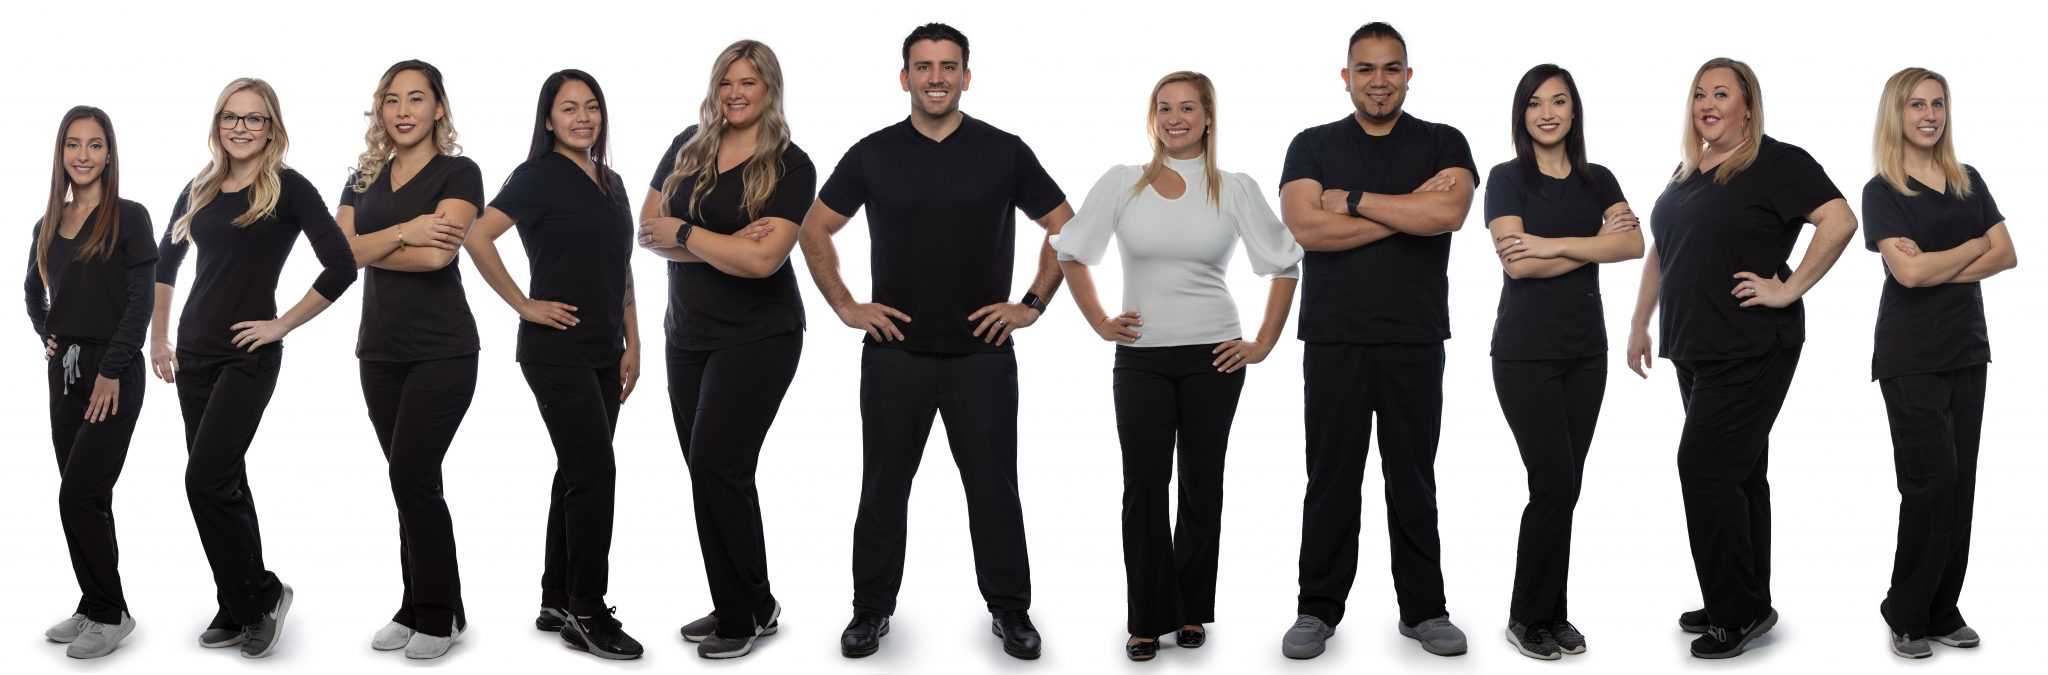 our team of Jacksonville dentists